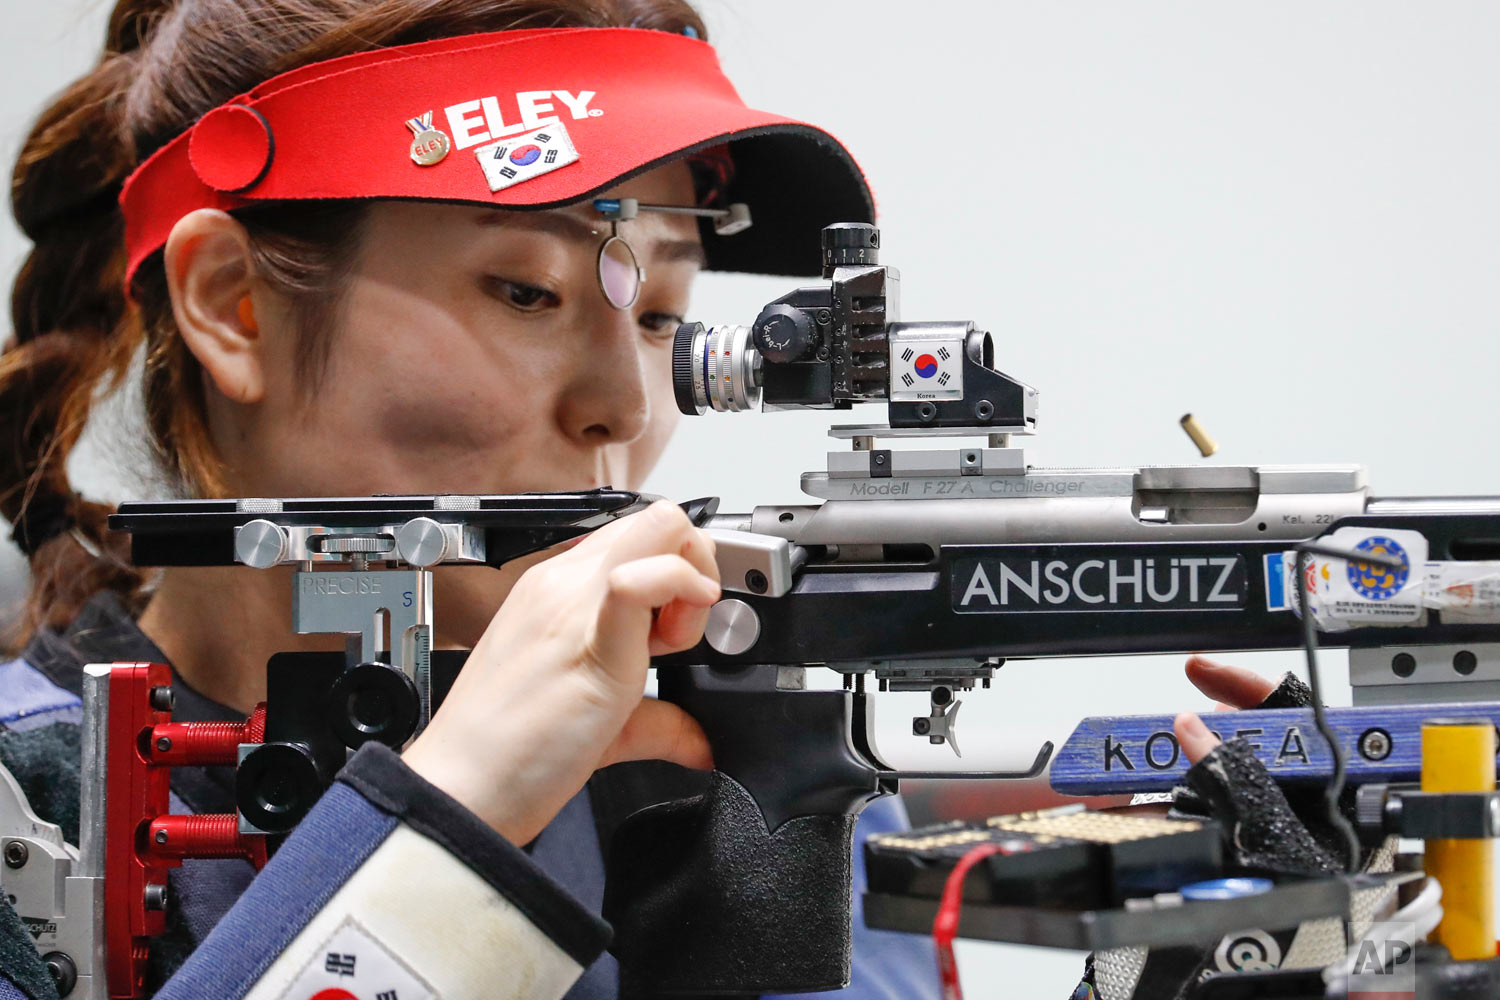 South Korea's Jeong Mira clears her rifle barrels during the shoots in the final round of the 50m rifle 3 positions women's shooting event during the 18th Asian Games in Palembang, Indonesia, Wednesday, Aug. 22, 2018. (AP Photo/Vincent Thian)